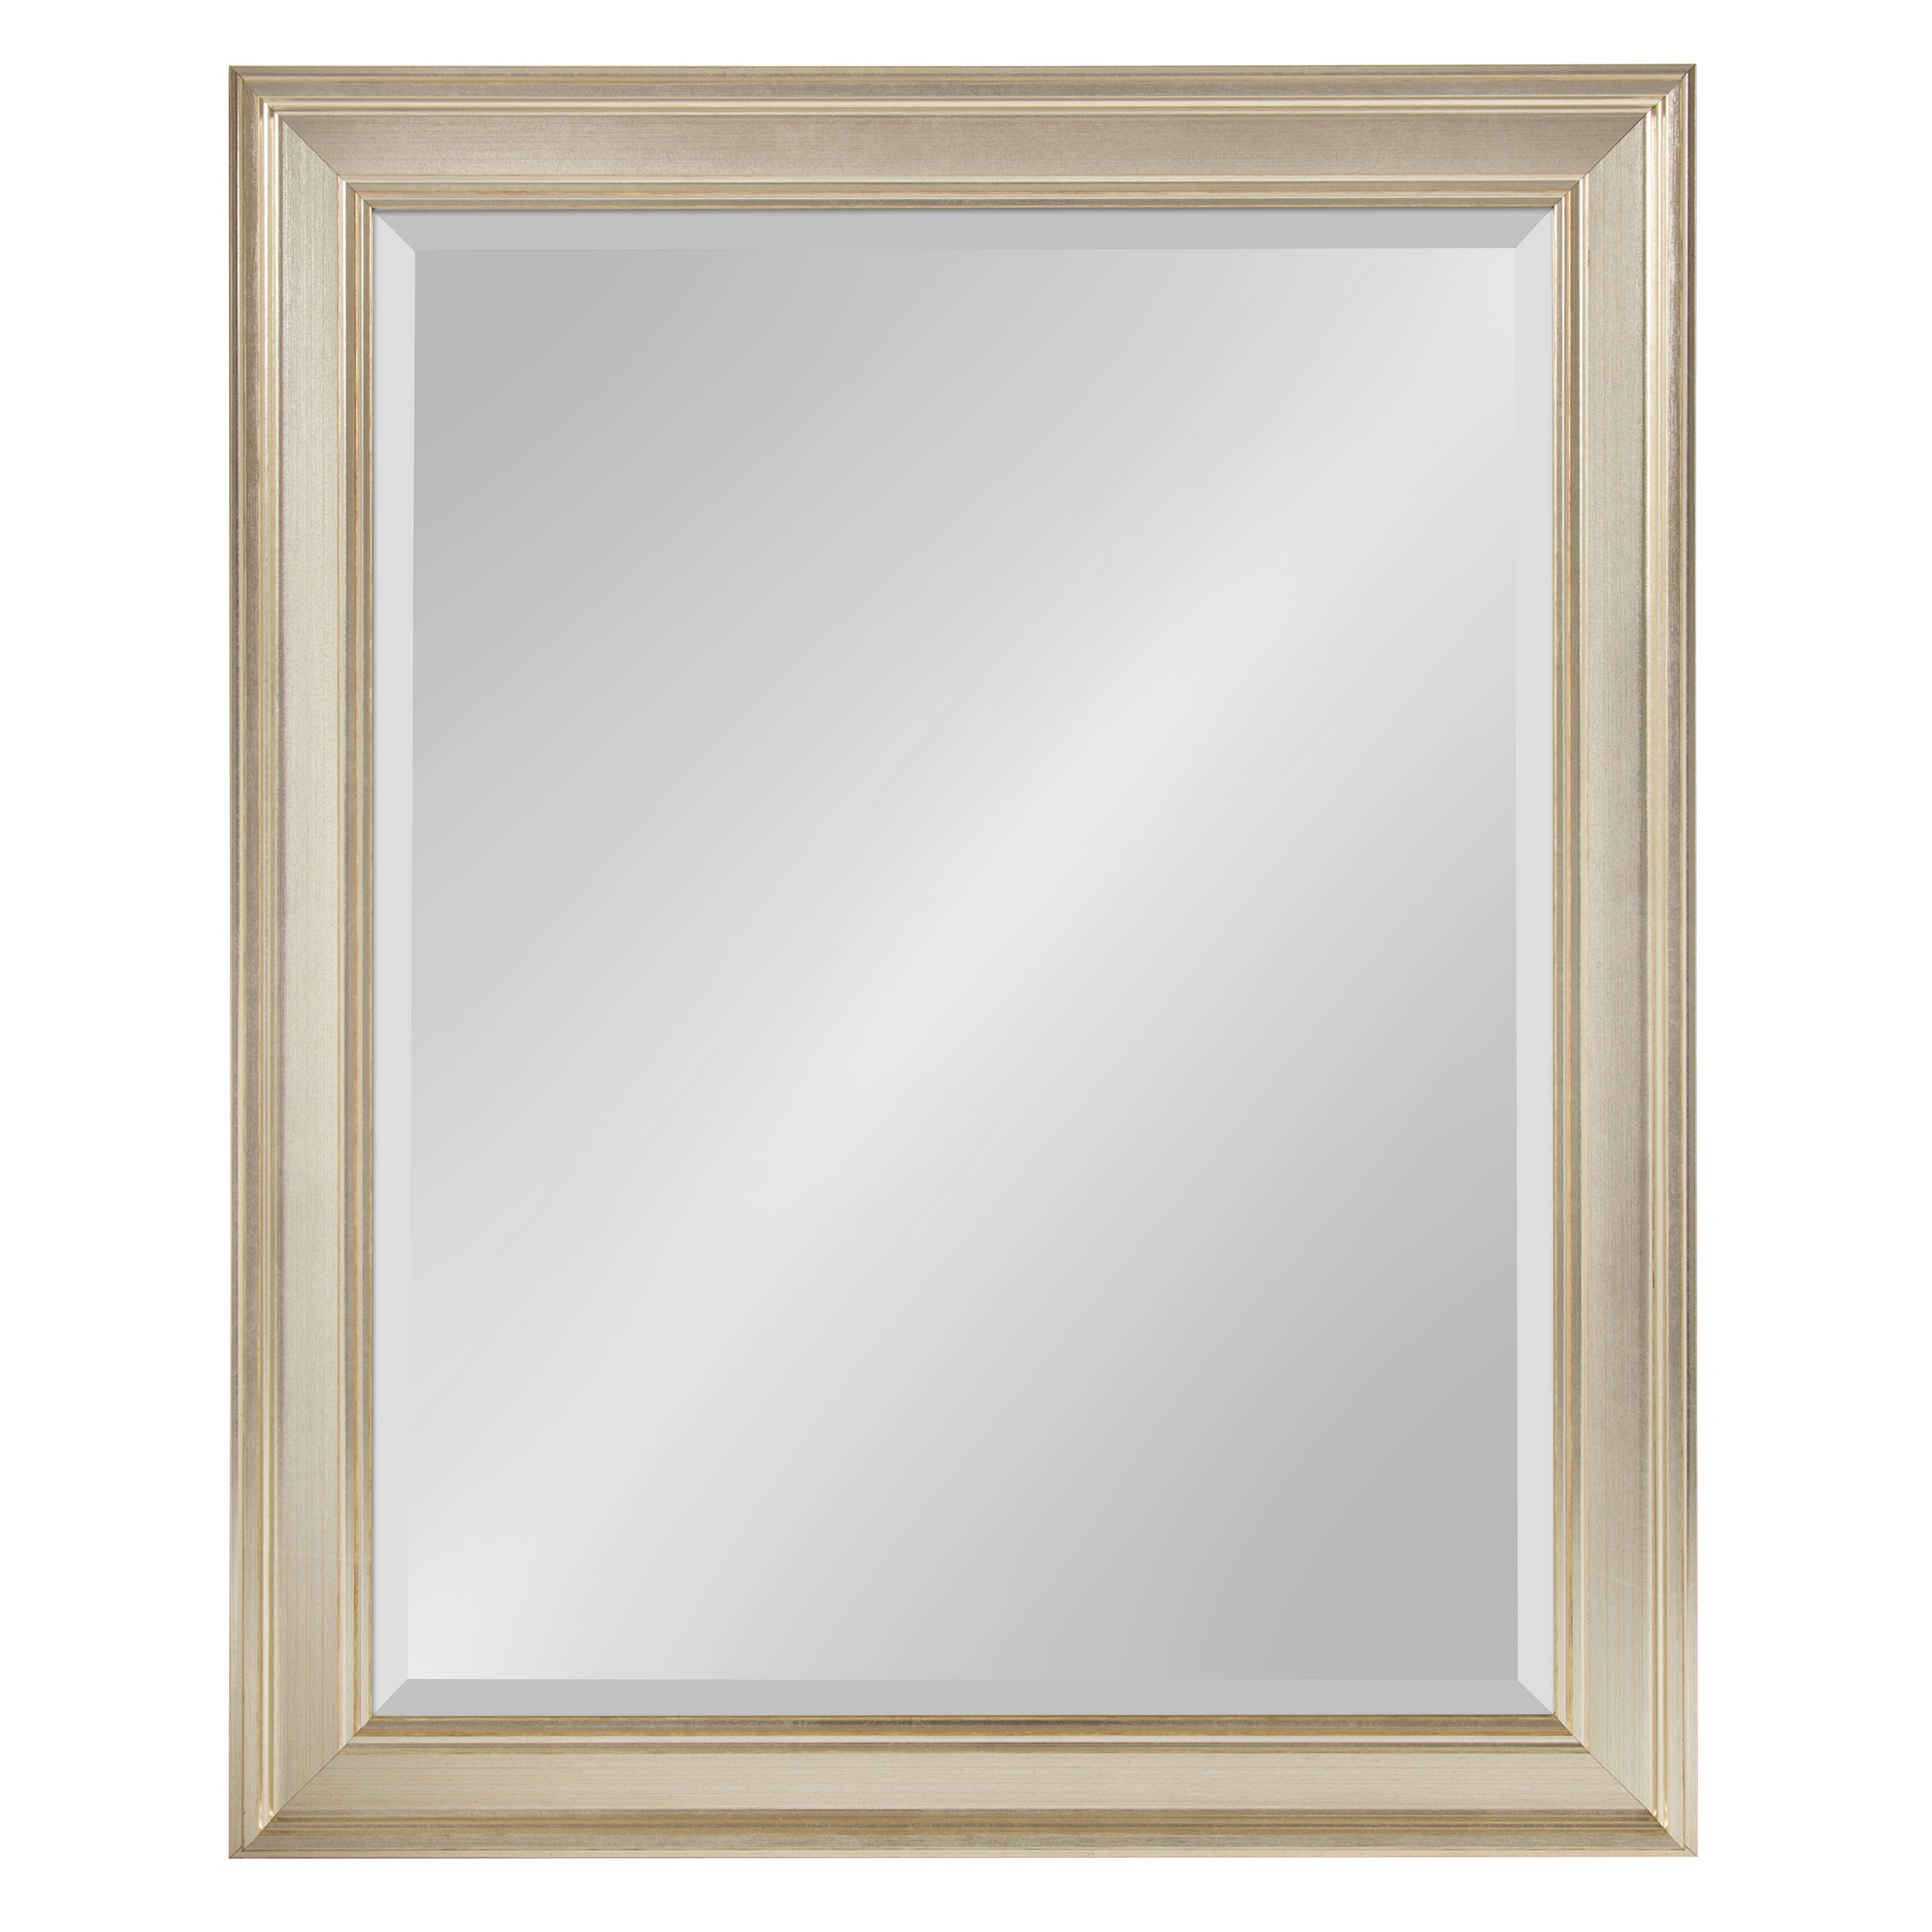 Salter Framed Rectangle Accent Mirror Throughout Rectangle Accent Mirrors (View 3 of 20)